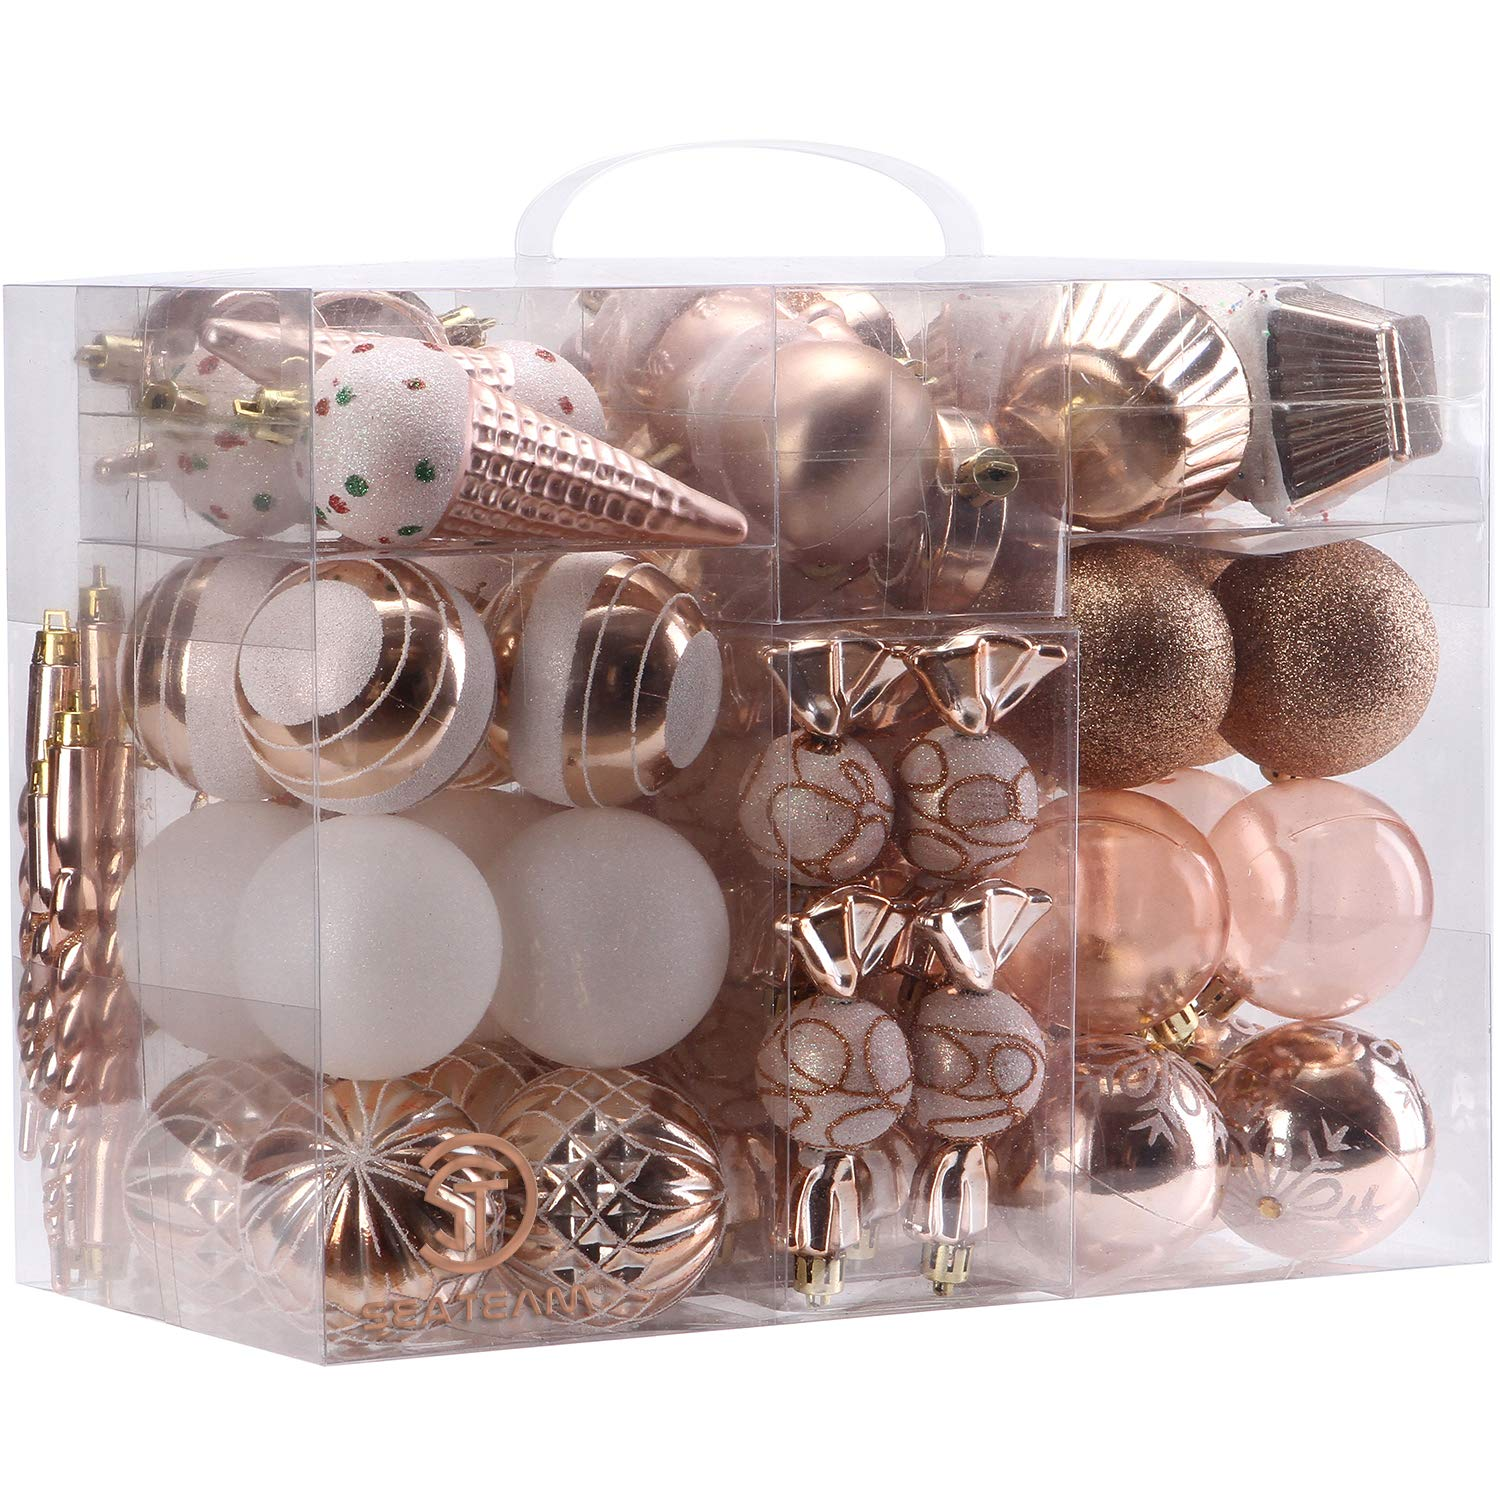 Sea Team 80-Pack Assorted Shatterproof Christmas Ball Ornaments Set Decorative Baubles Pendants with Reusable Hand-held Gift Package for Xmas Tree (Rose Gold)